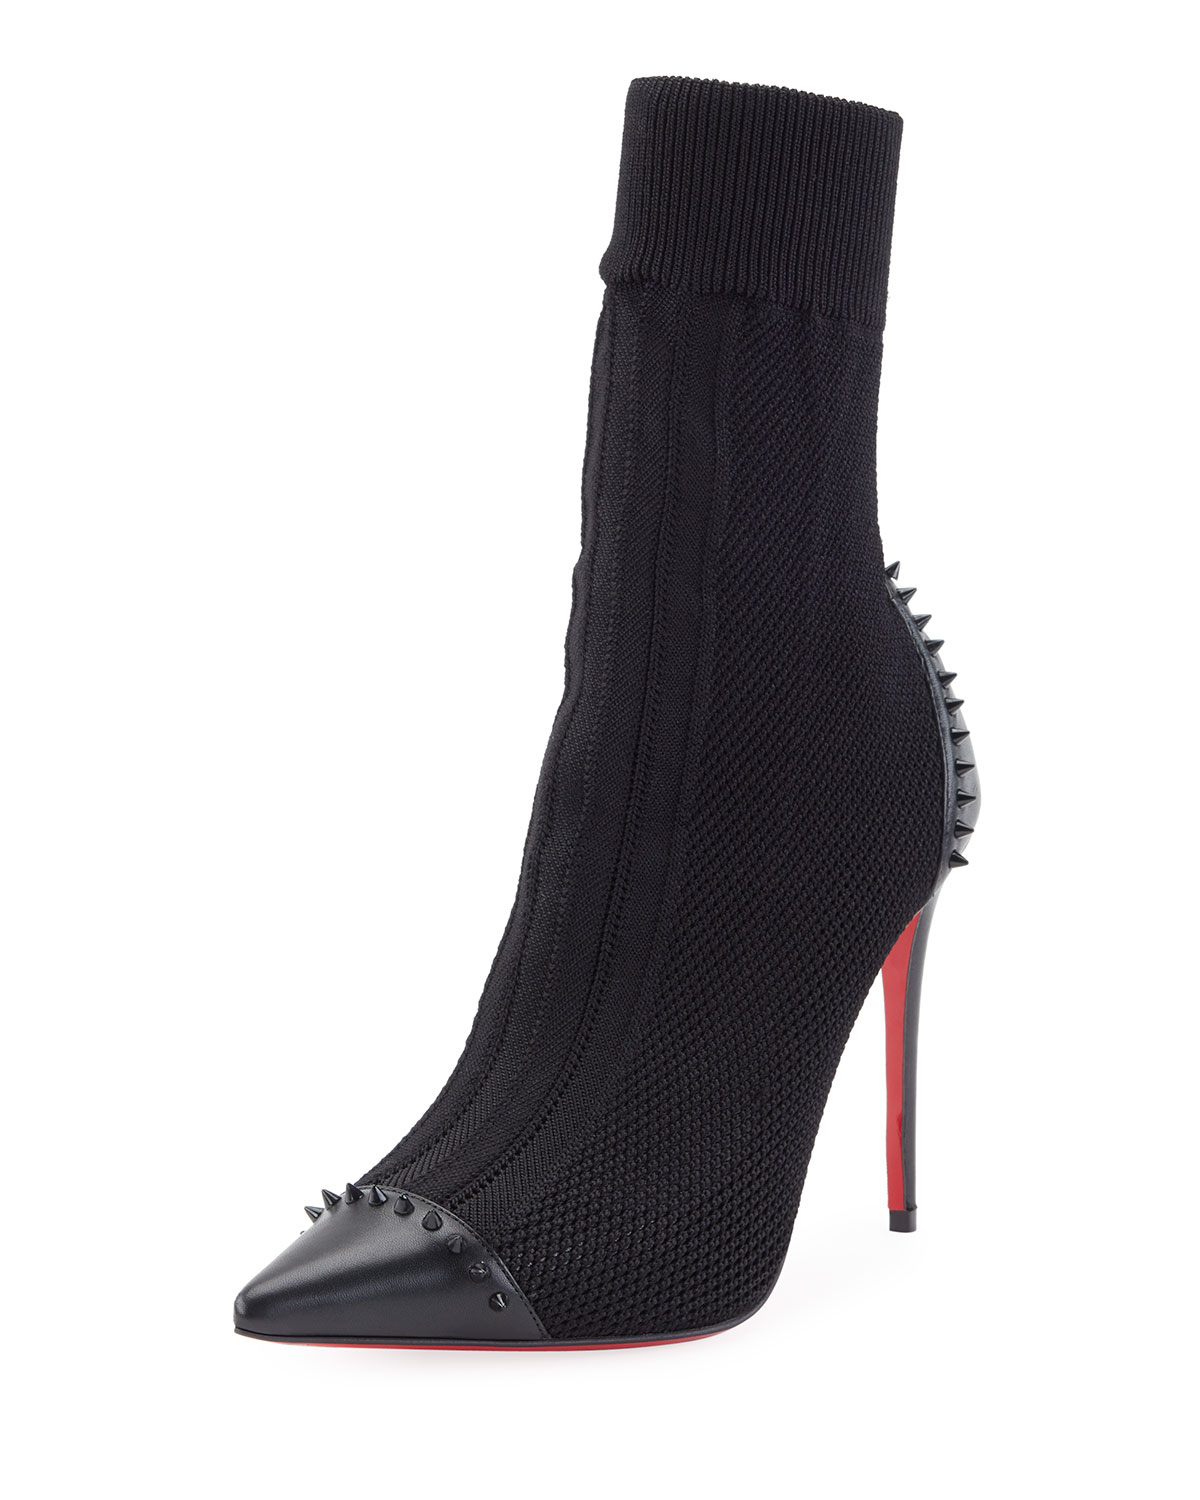 28d5ca2c369 Christian Louboutin Dovi Dova Knit Red Sole Booties